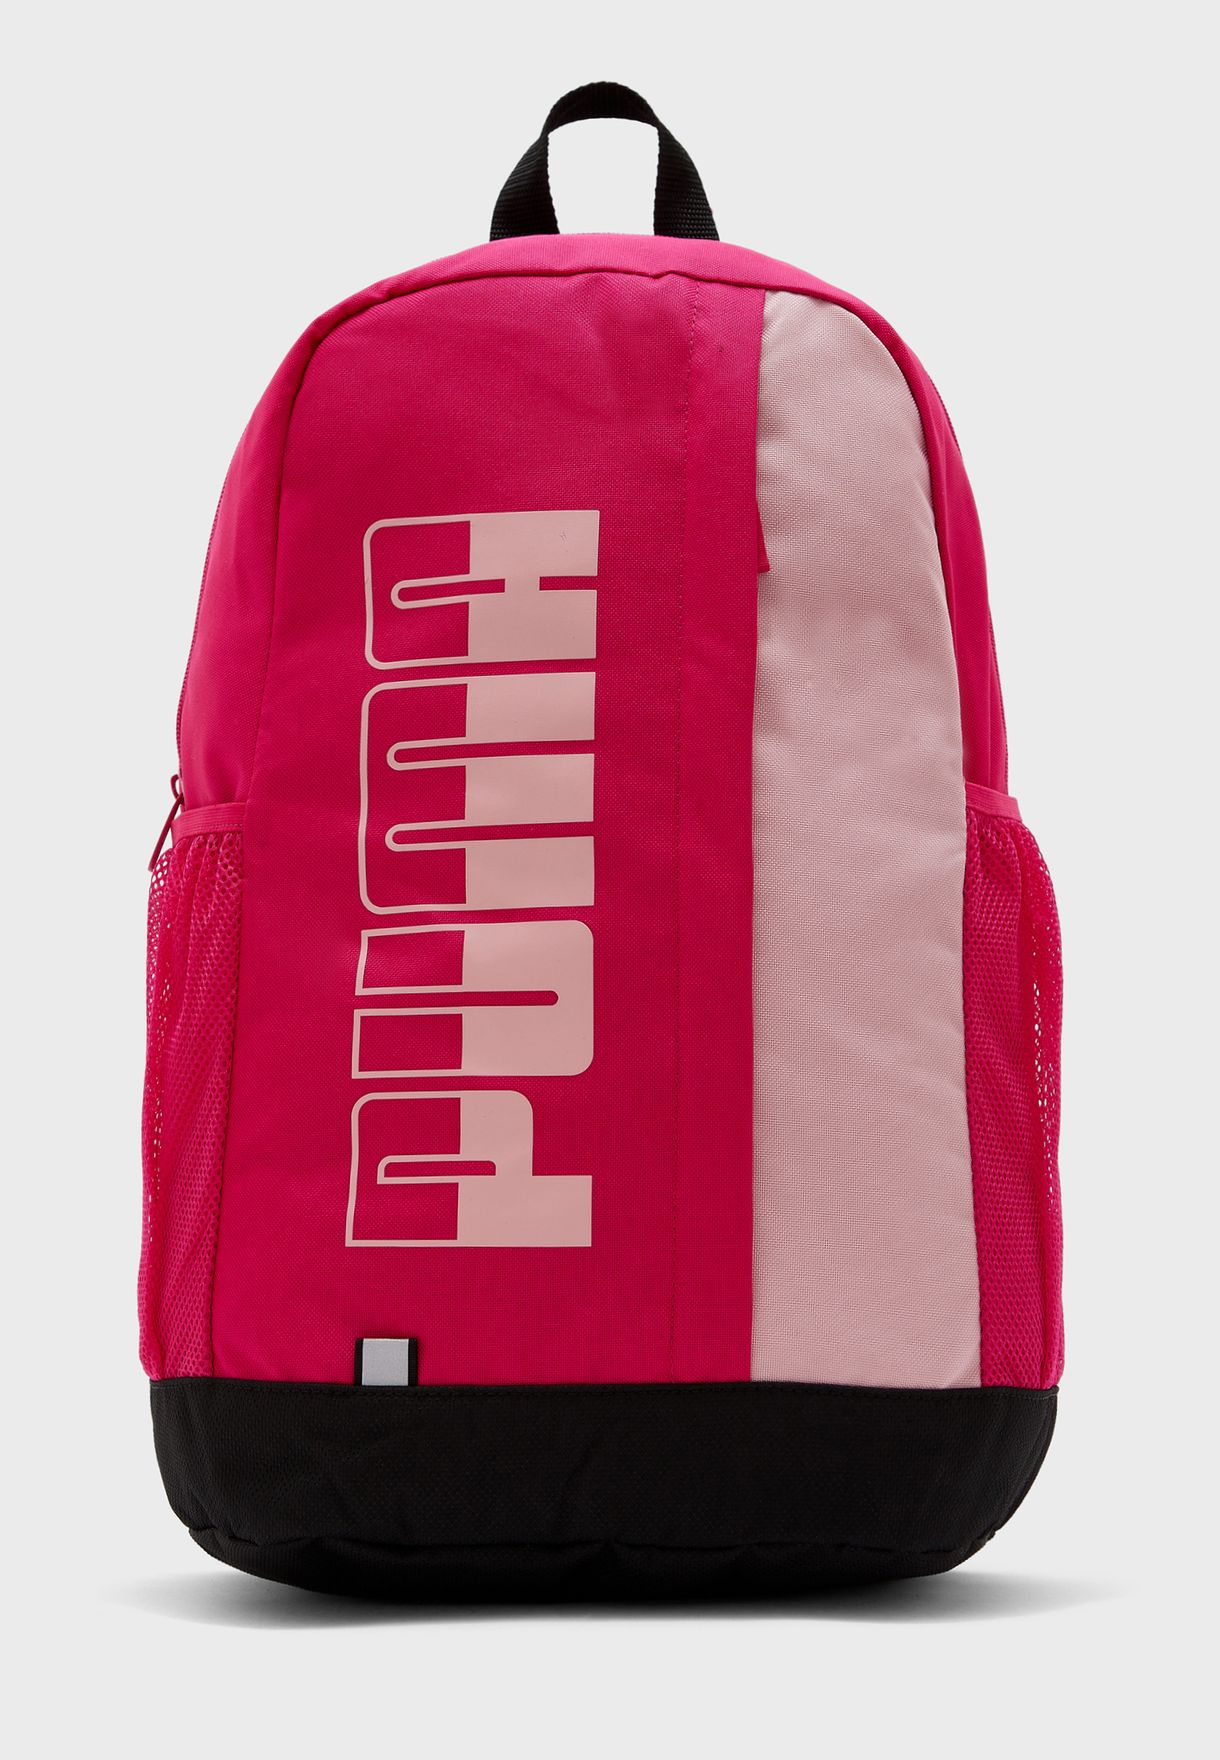 Plus Backpack II